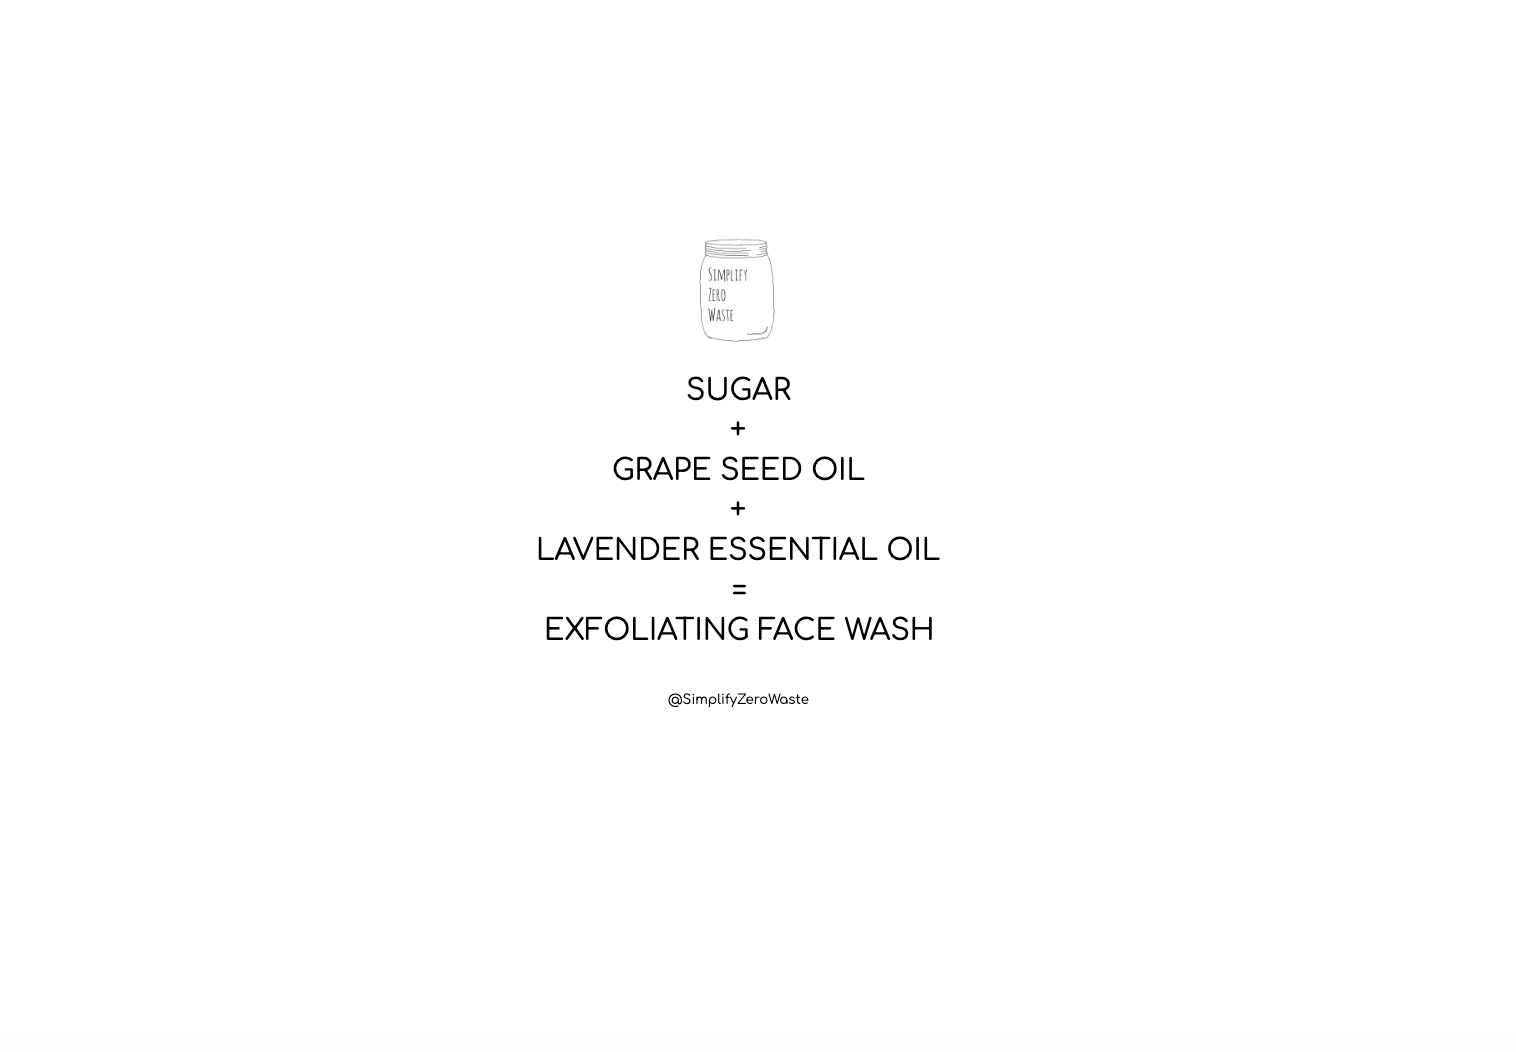 exfoliating face wash.png